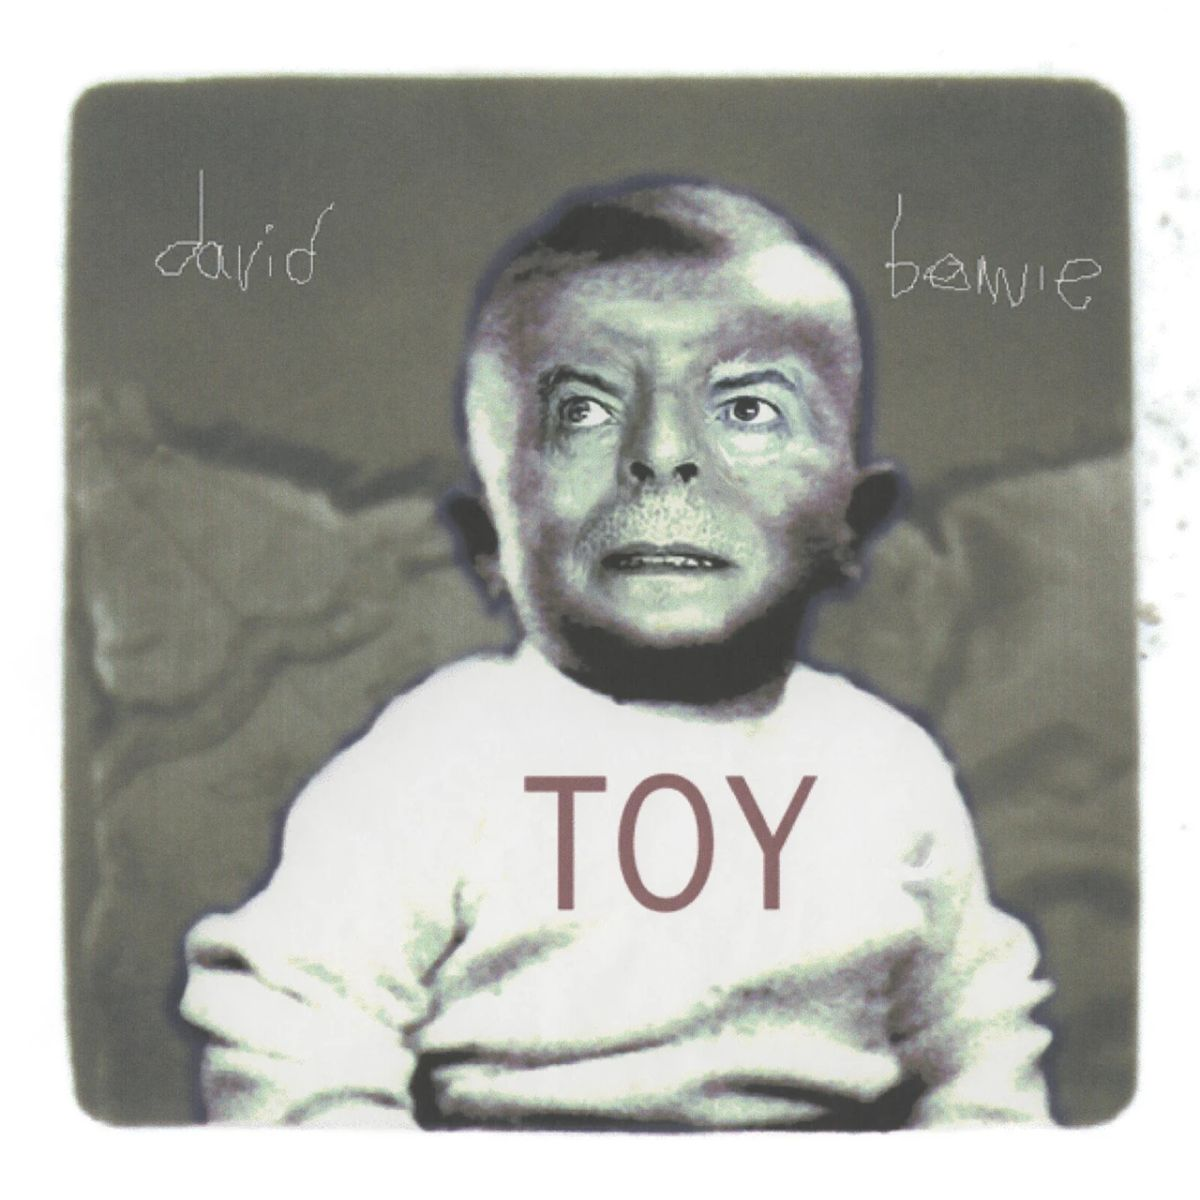 David Bowie - Toy Official